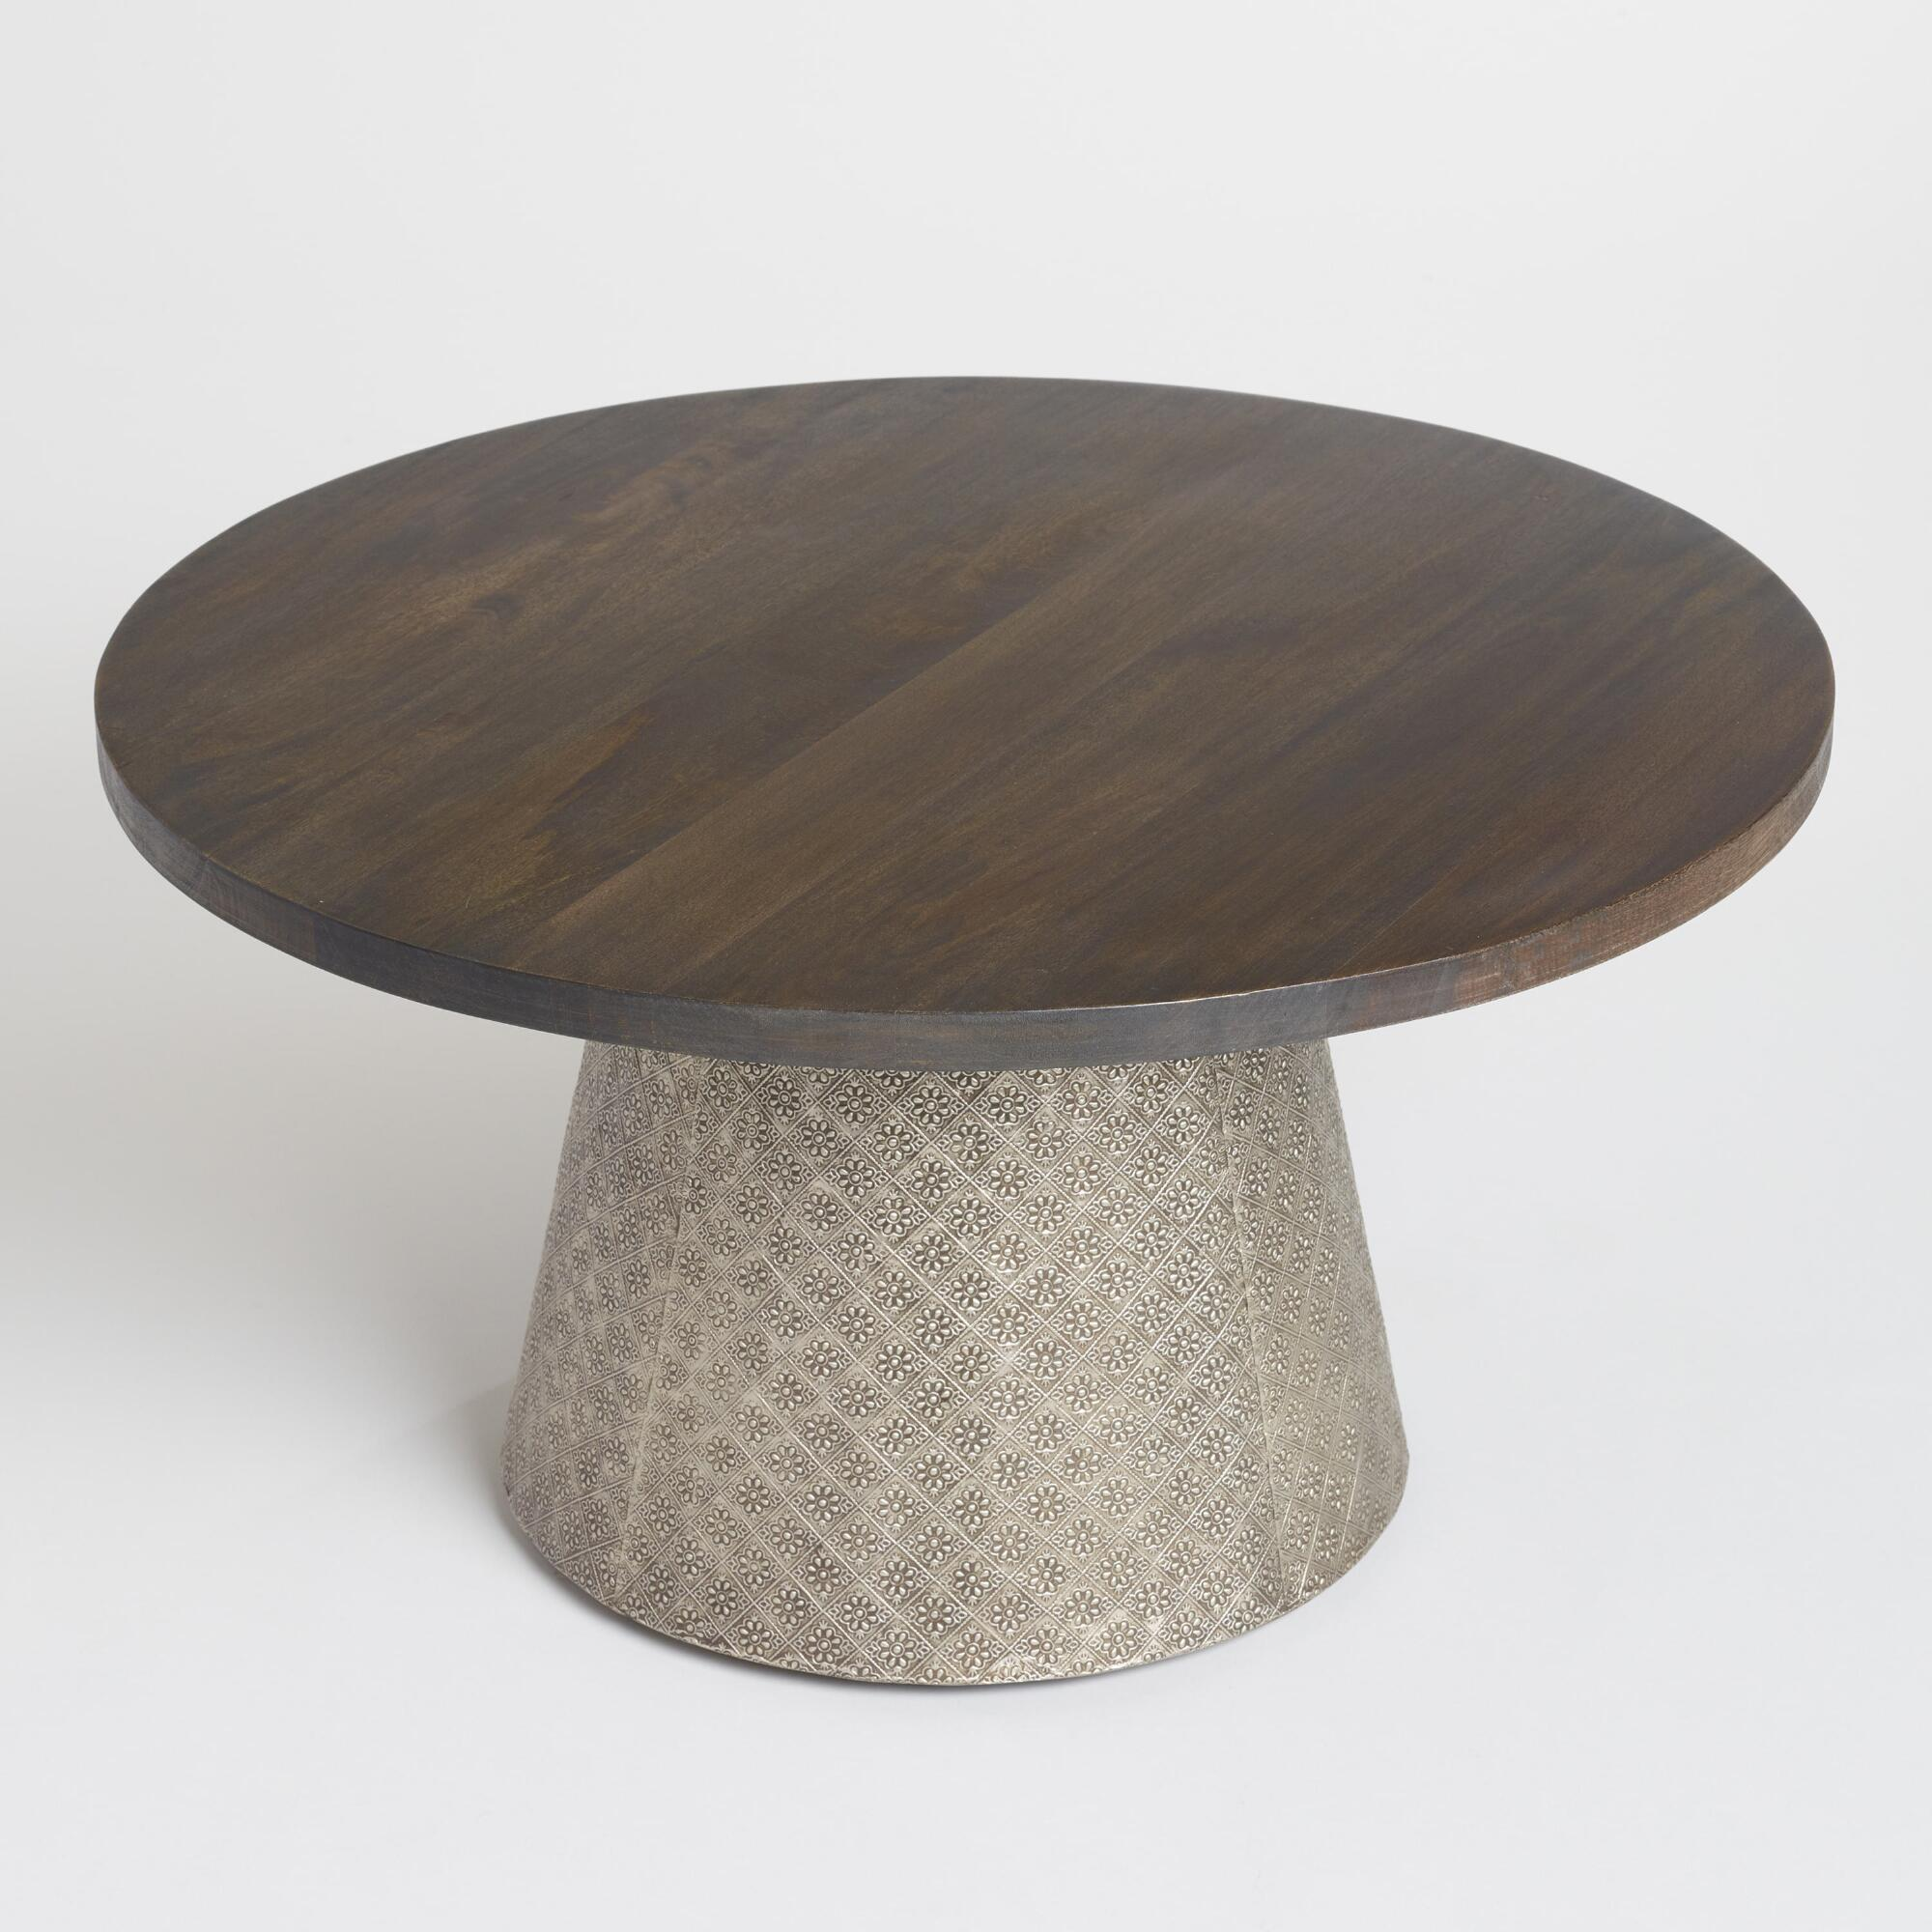 coffee tables end accent world market iipsrv fcgi low round table wood and embossed metal kiran outdoor grill prep tray black glass vintage legs stained pendant light pottery barn